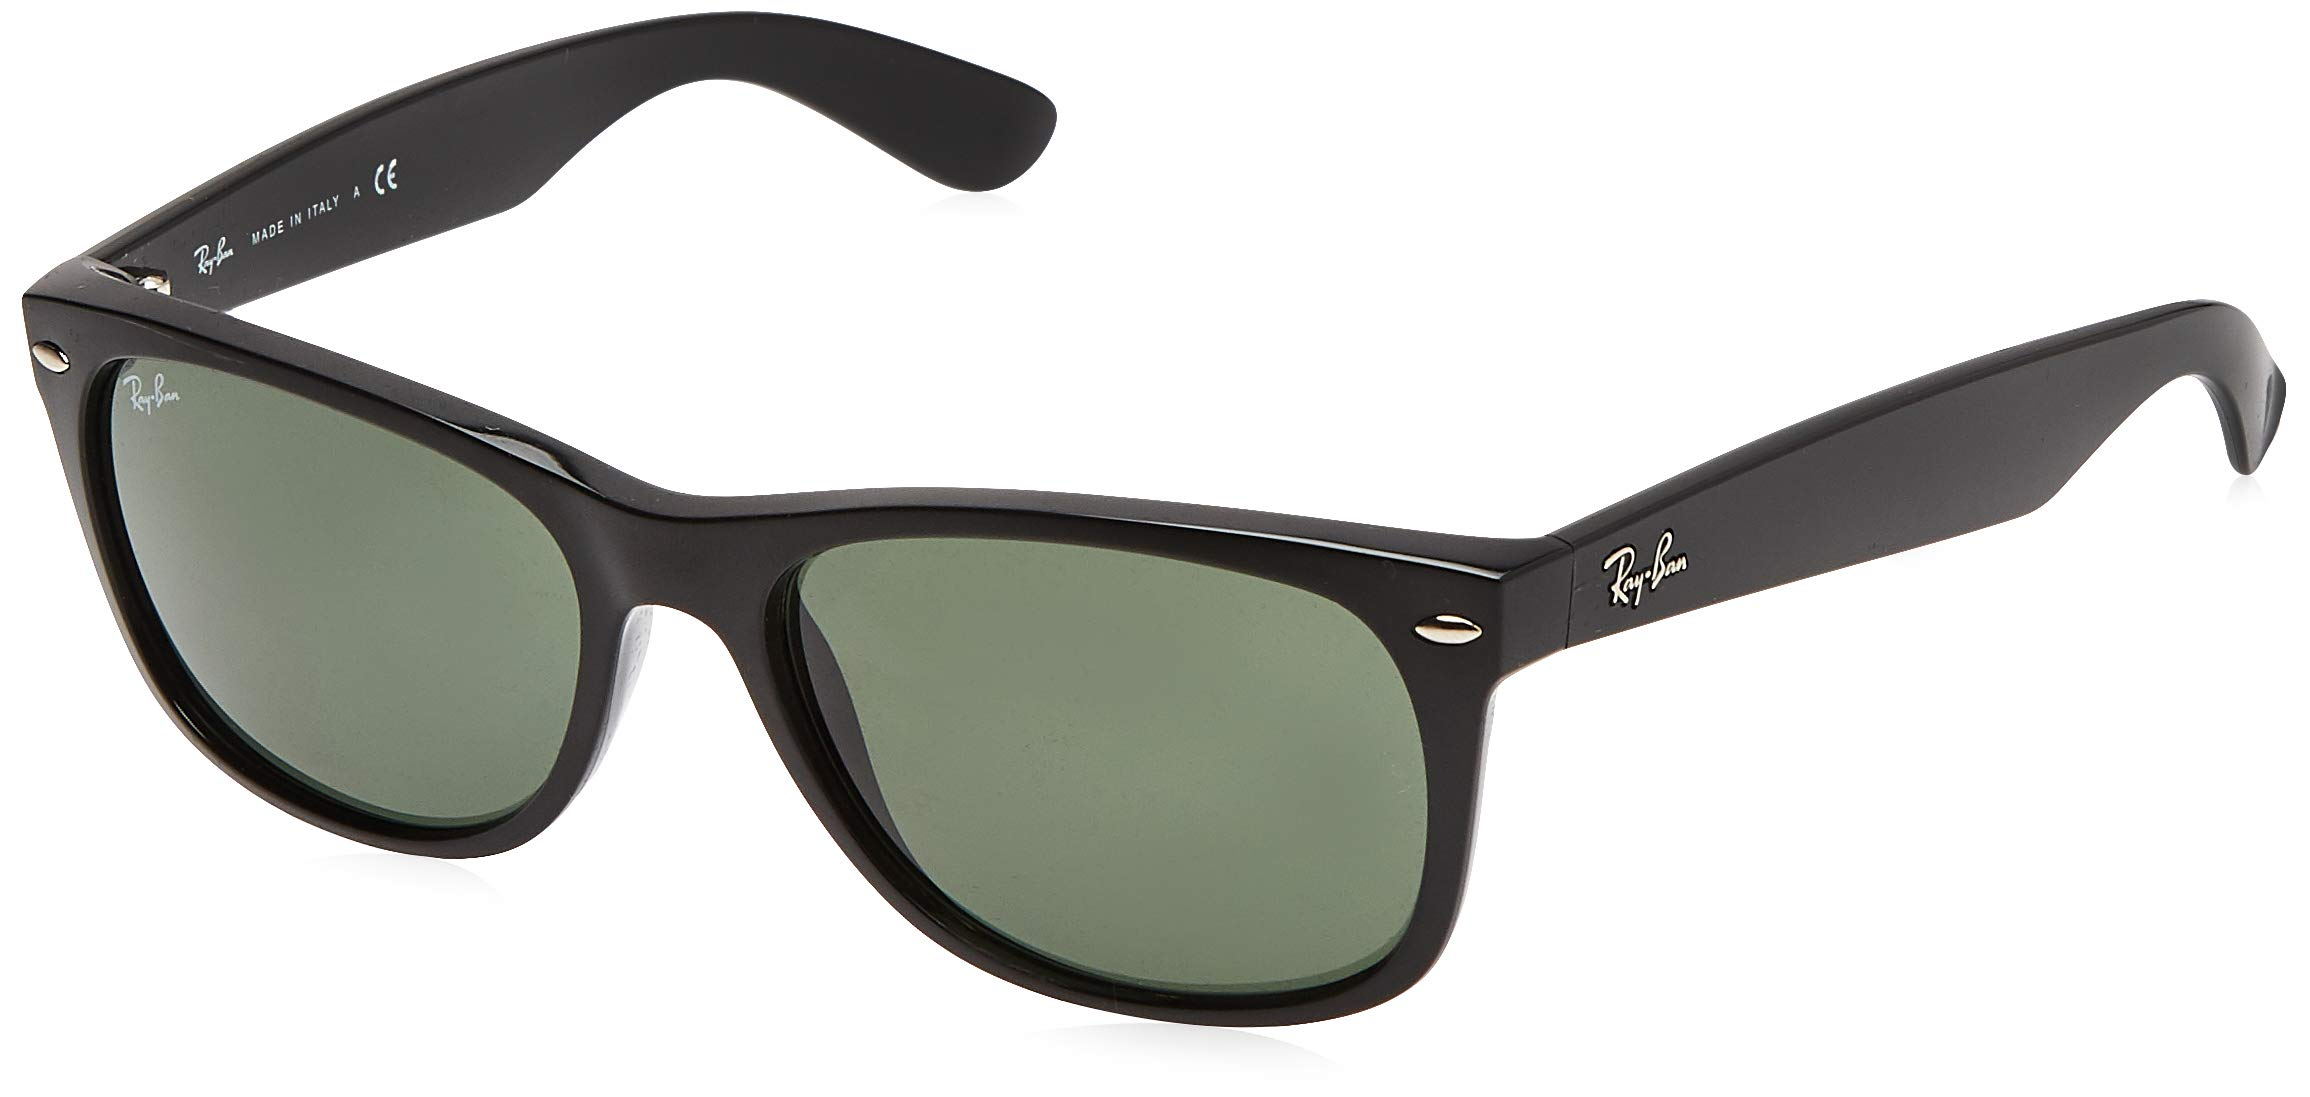 RAY-BAN RB2132 New Wayfarer Sunglasses, Black/Green, 52 mm by RAY-BAN